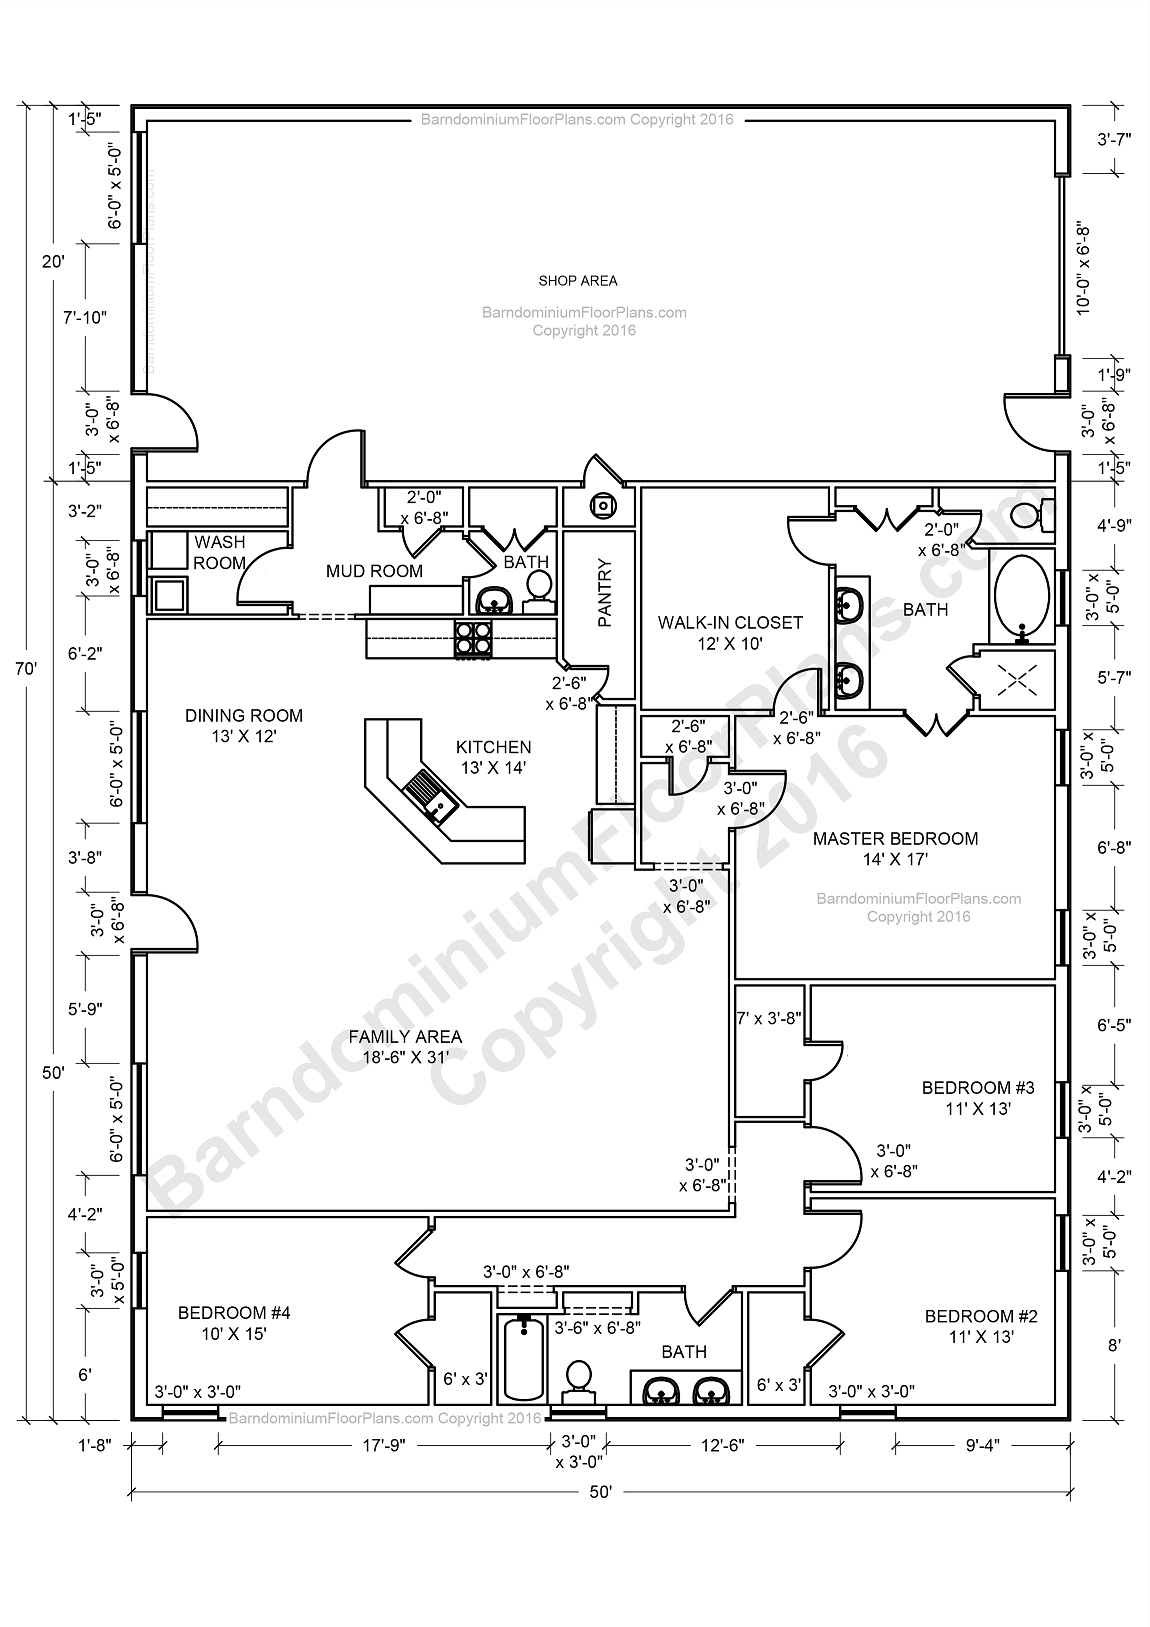 Barndominium floor plans barndominium floor plans 1 800 Pole home plans